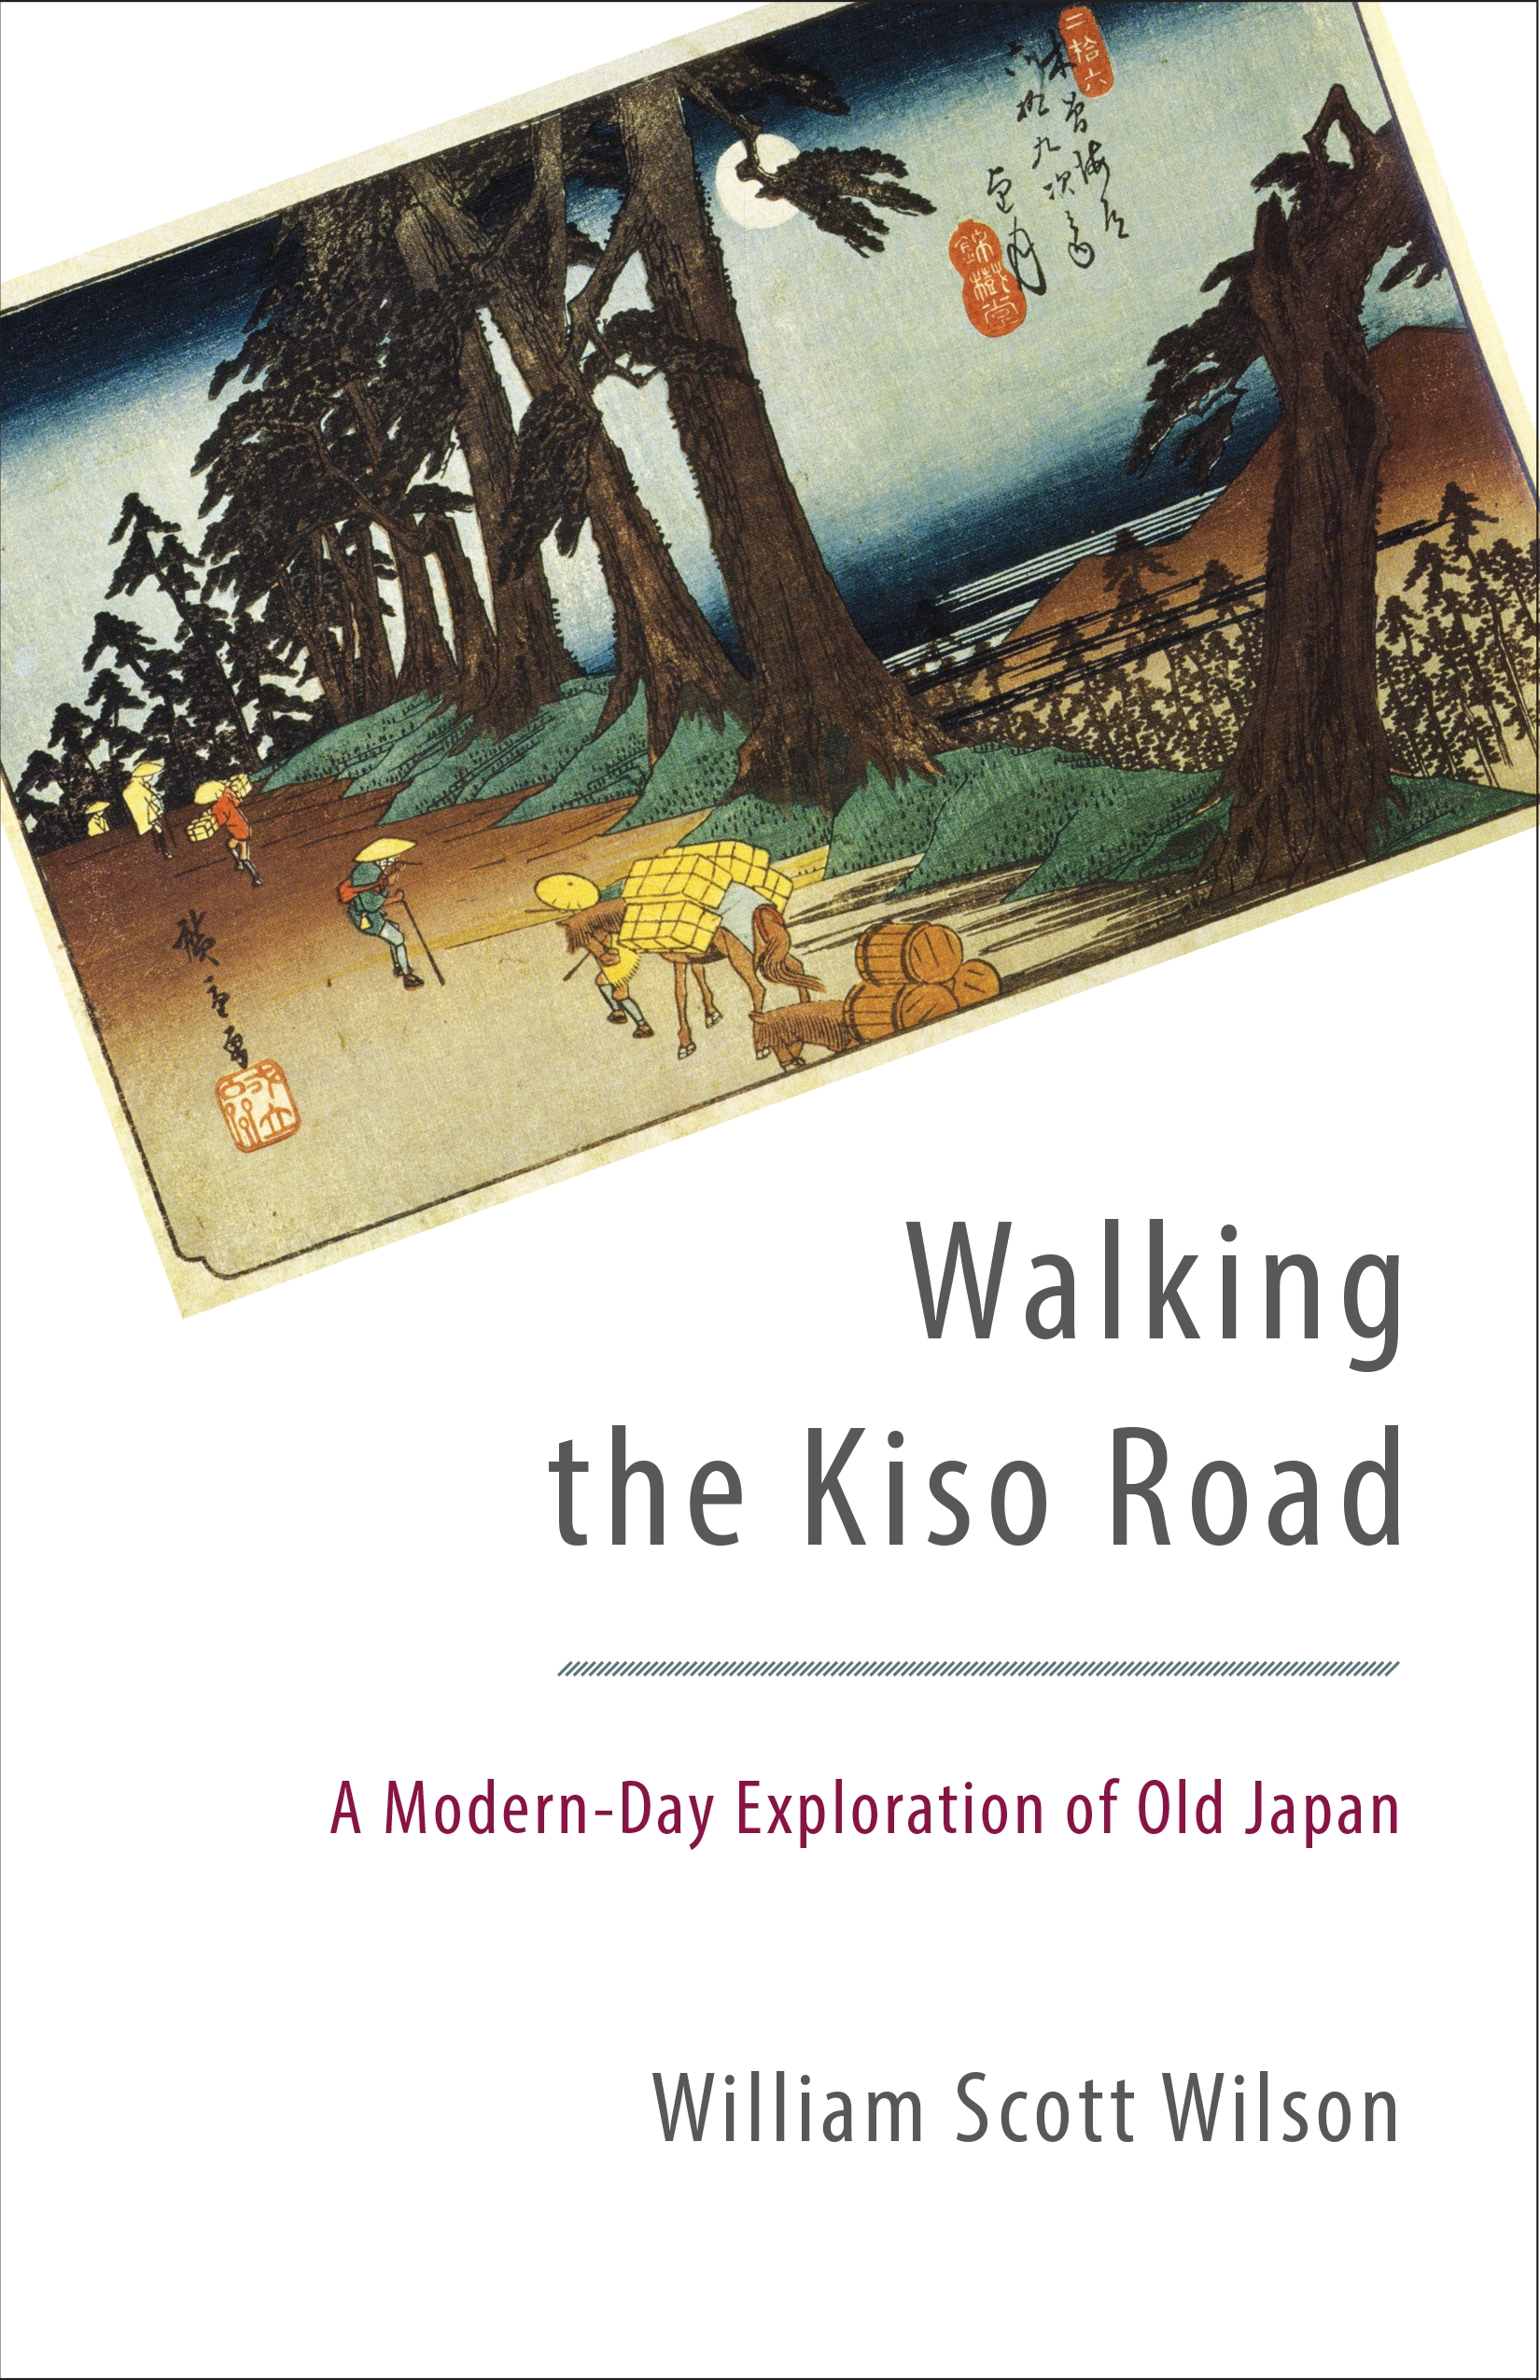 Walking the Kiso RoadA Modern-Day Exploration of Old Japan